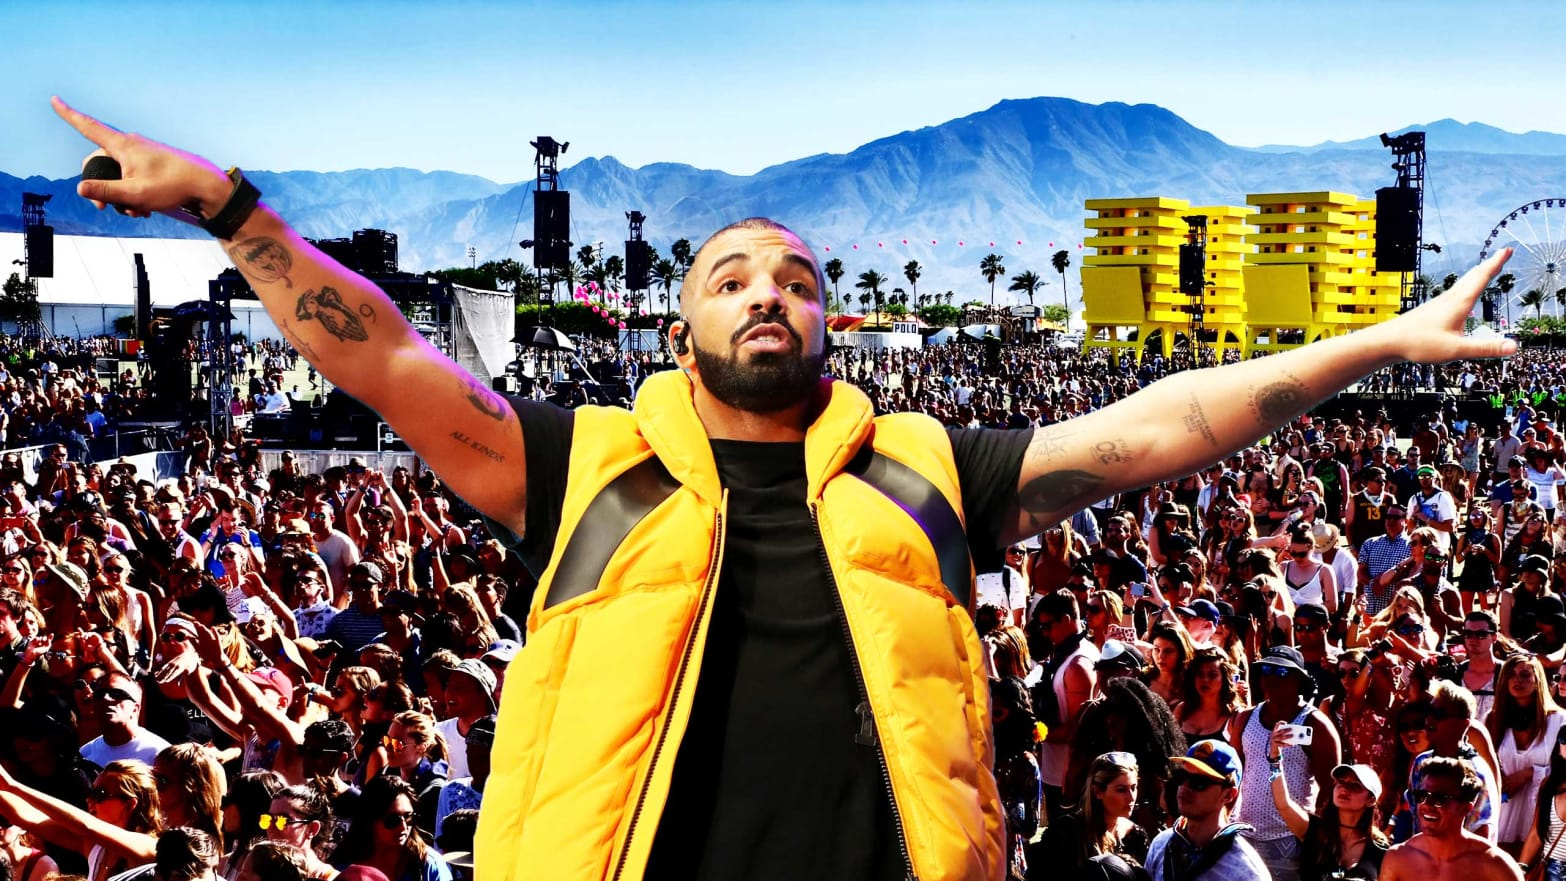 Coachella Is Trash: A Drake-Dissing, Culture-Appropriating